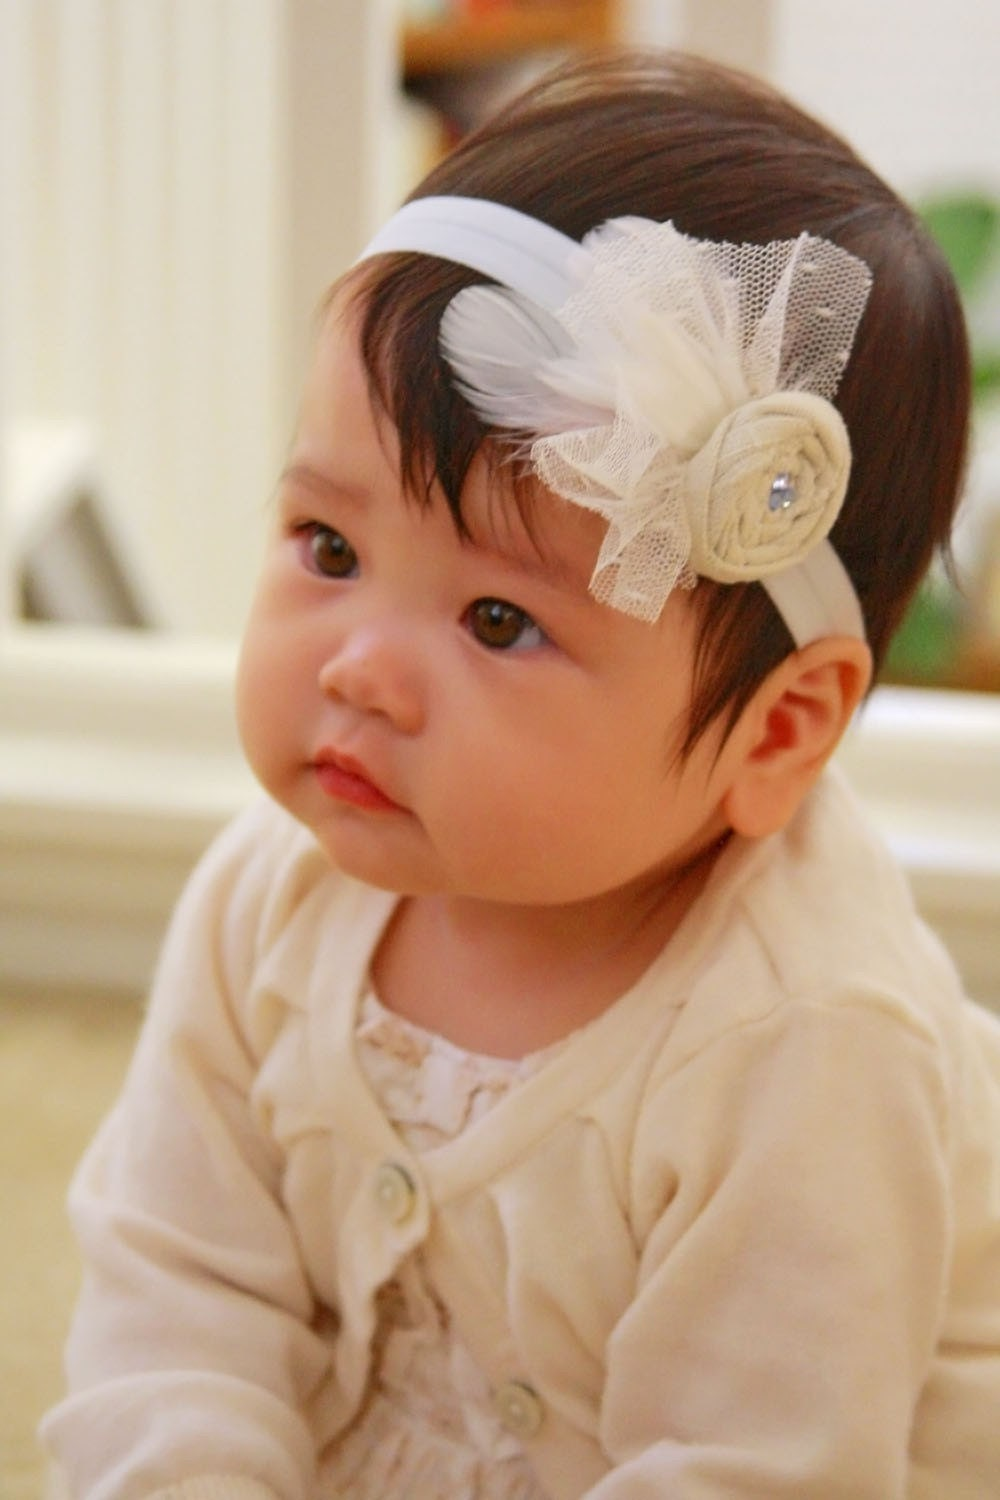 Find great deals on eBay for baby head band. Shop with confidence.